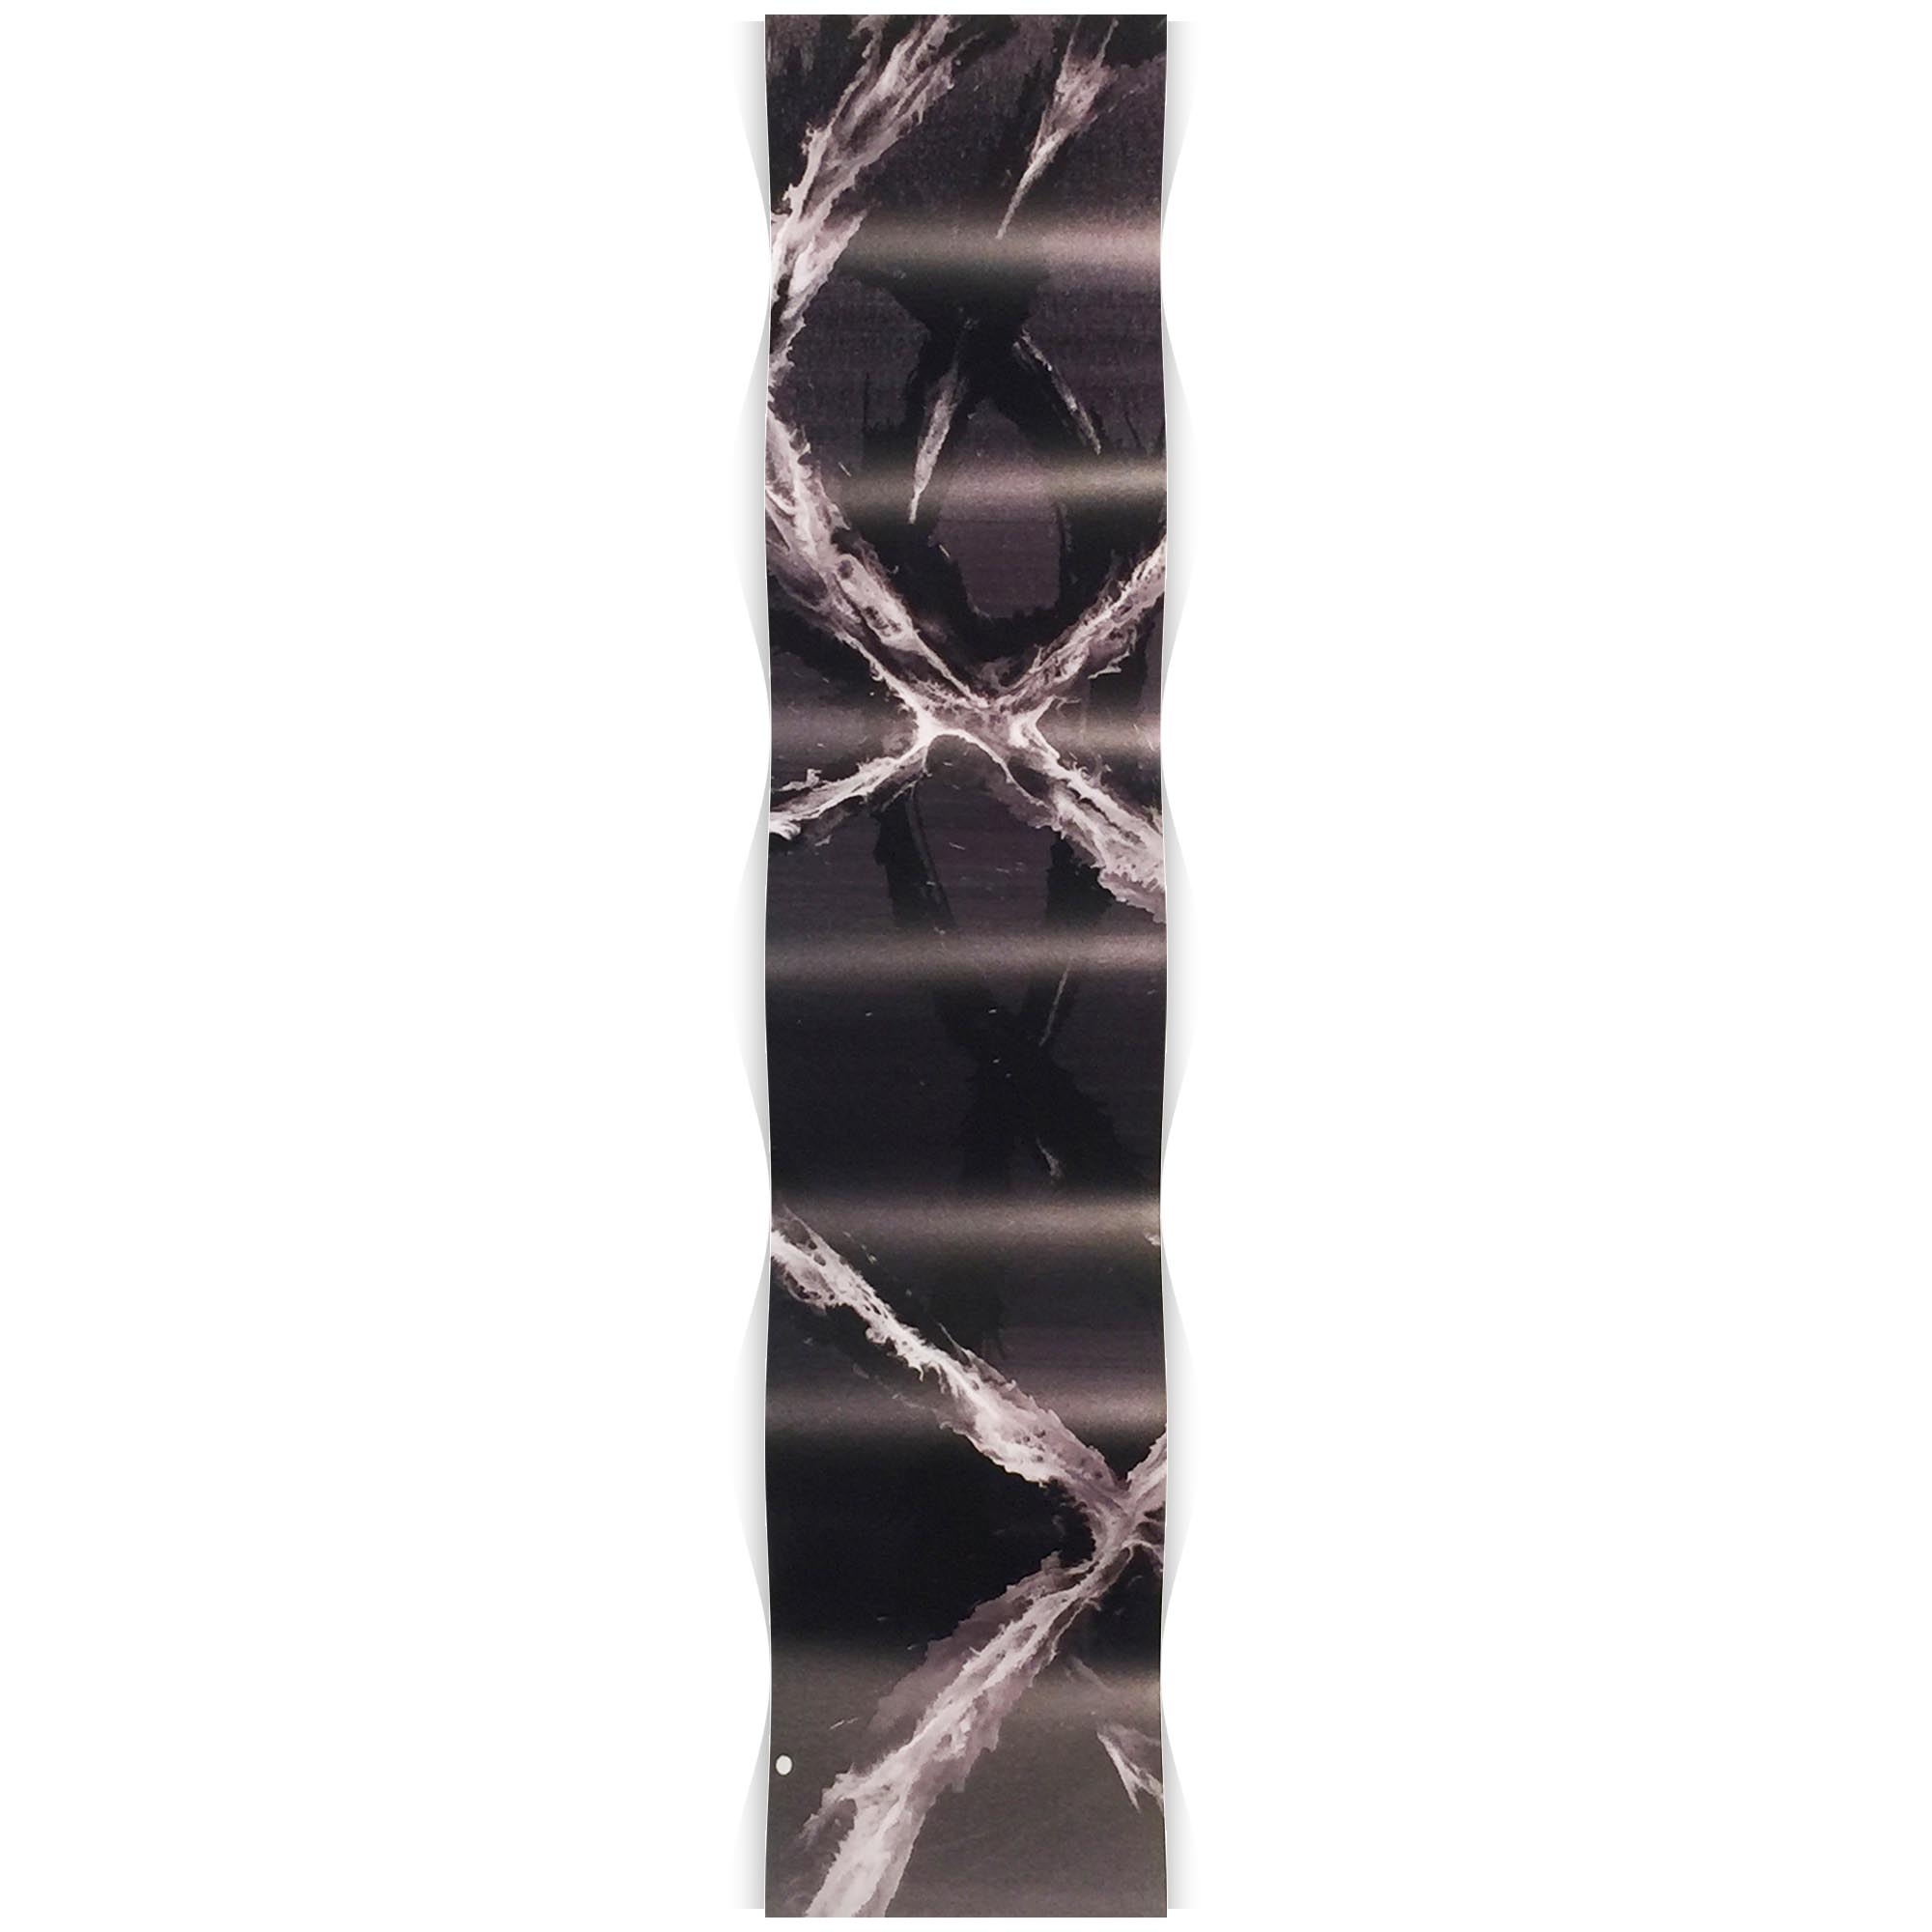 Black and White Wave 9.5x44in. Metal Eclectic Decor - Image 2